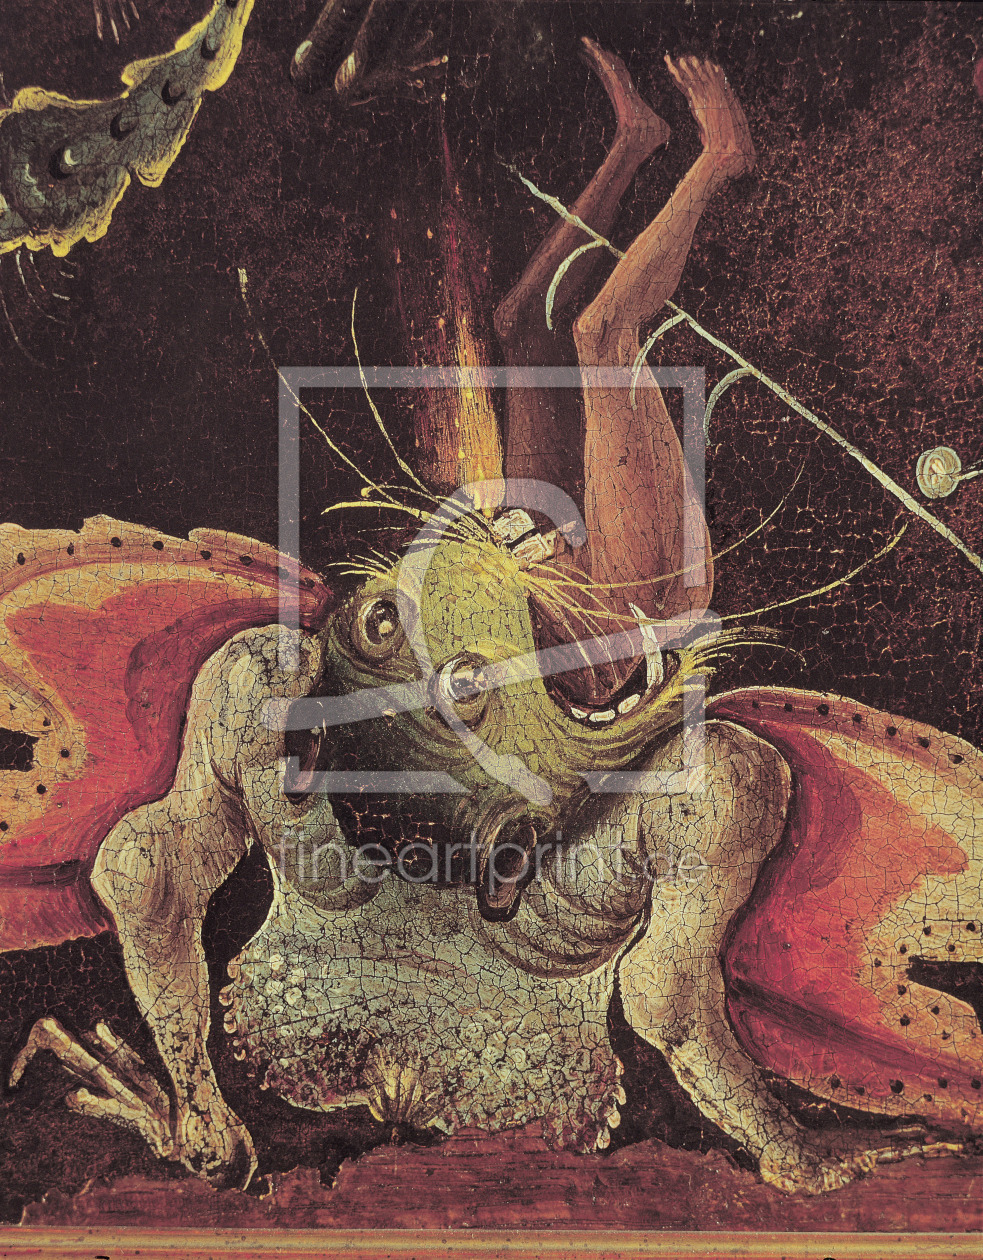 Bild-Nr.: 31000097 The Last Judgement, detail of a man being eaten by a monster, c.1504 erstellt von Bosch, Hieronymus